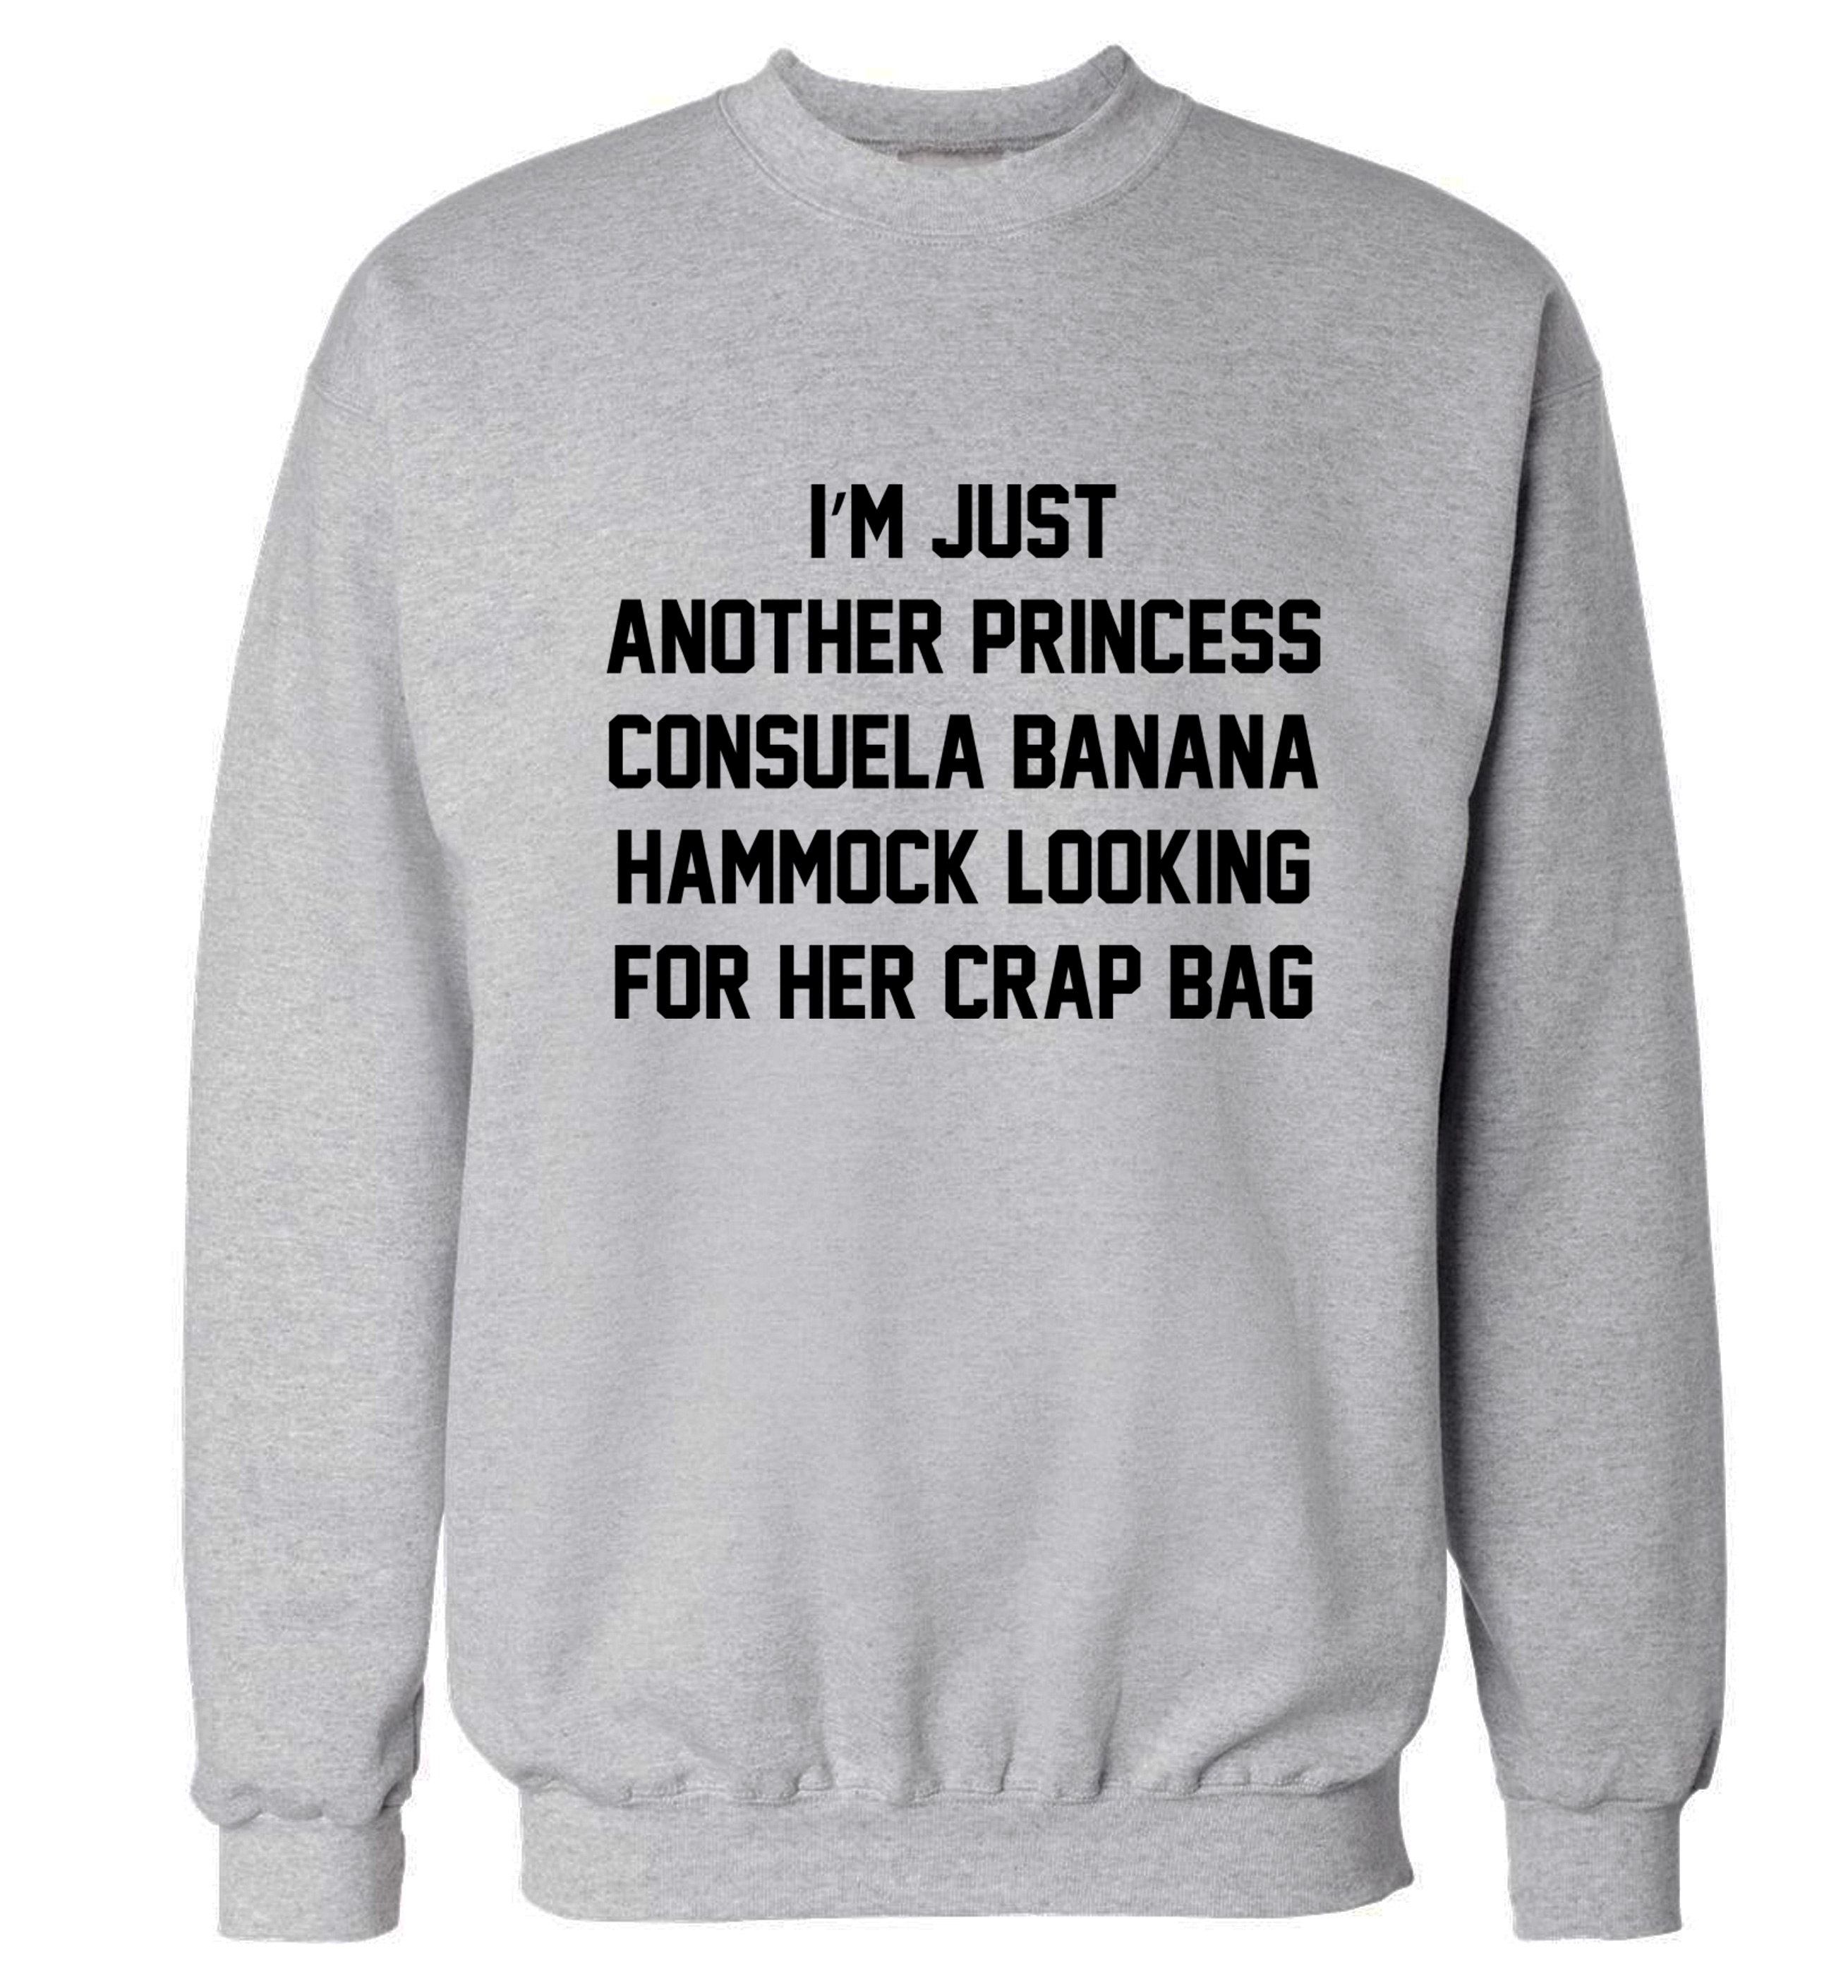 120 20grey jumper small i u0027m just another princess consuela banana hammock looking for her      rh   storenvy